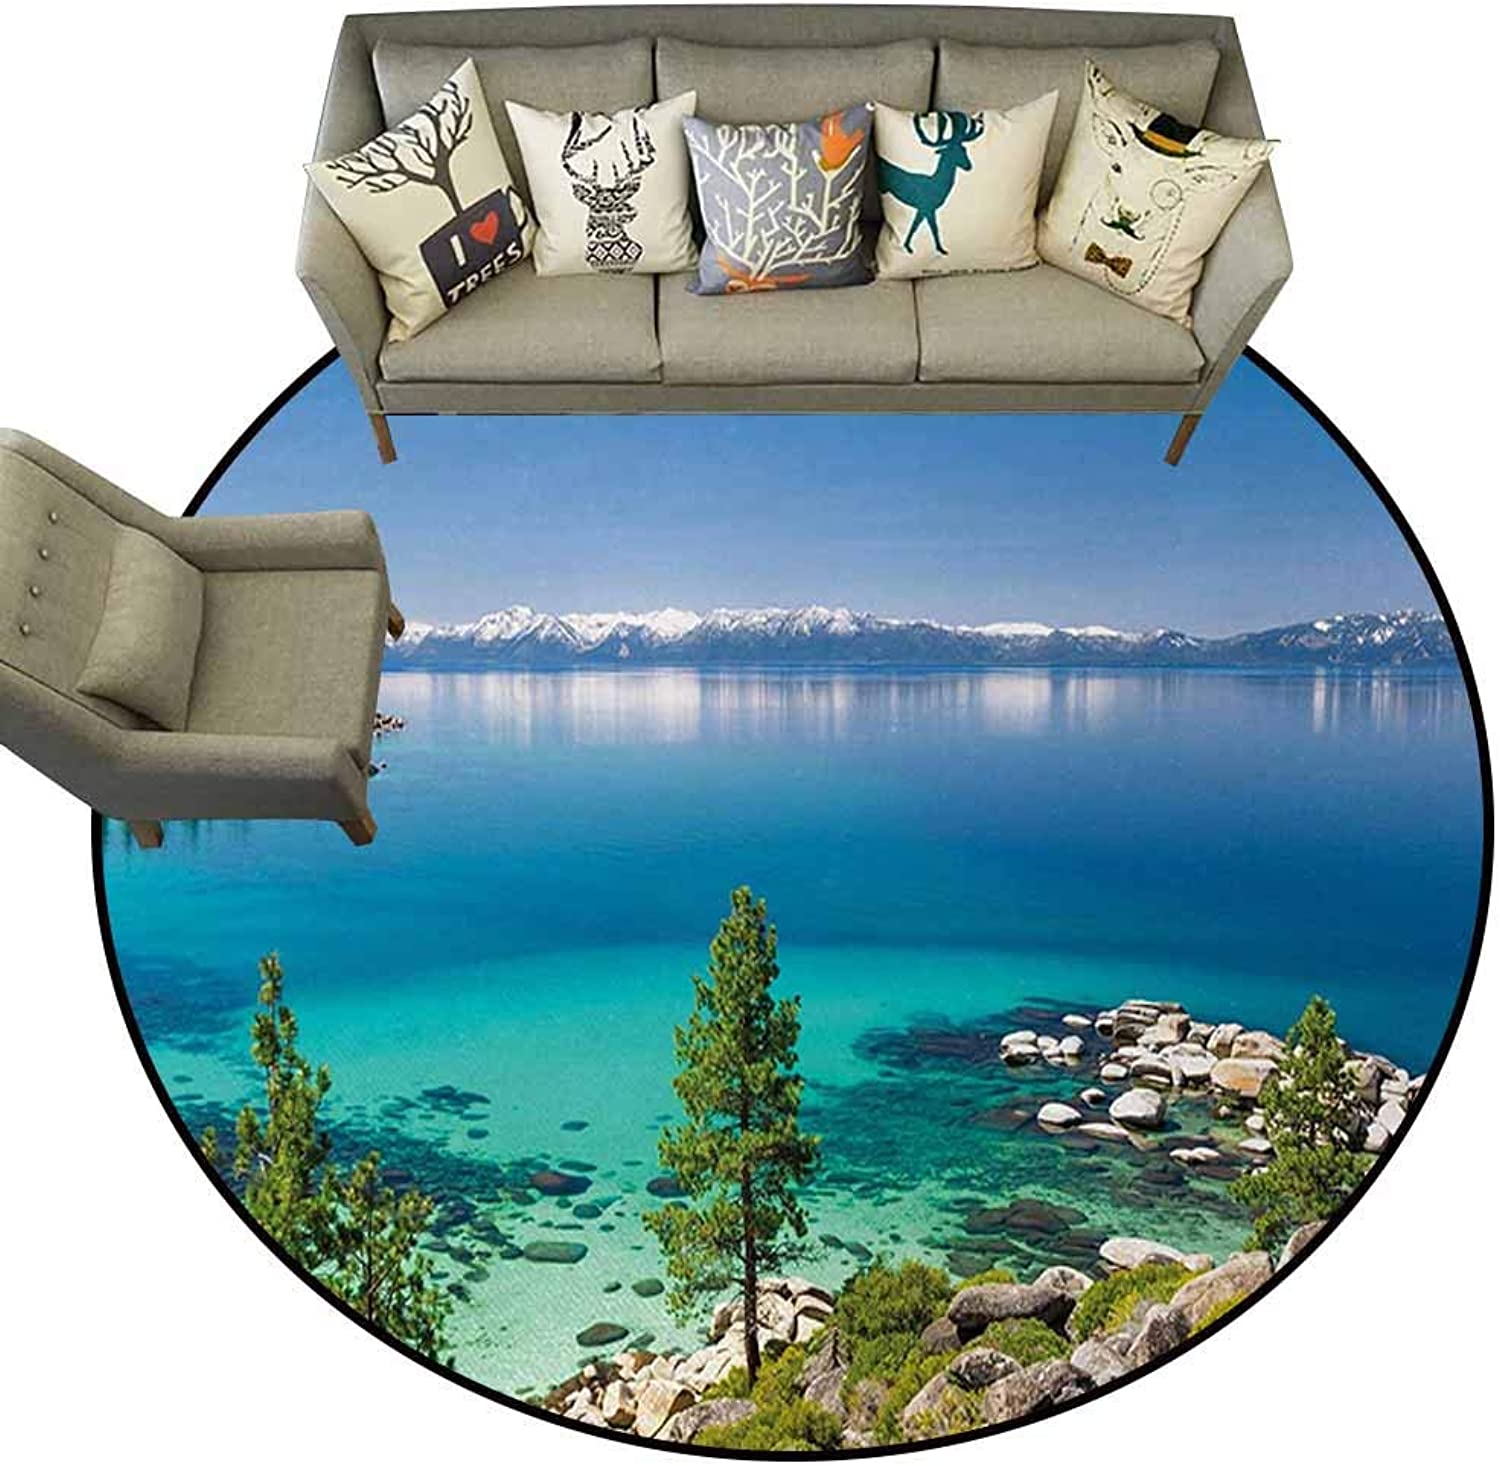 Doormat Kitchen Bathroom,bluee,Tranquil View of Lake Tahoe Sierra Pines on Rocks with Turquoise Waters Shoreline,bluee Grey Green,Floor Rug shoes Scraper Door Mat Rug4 feet